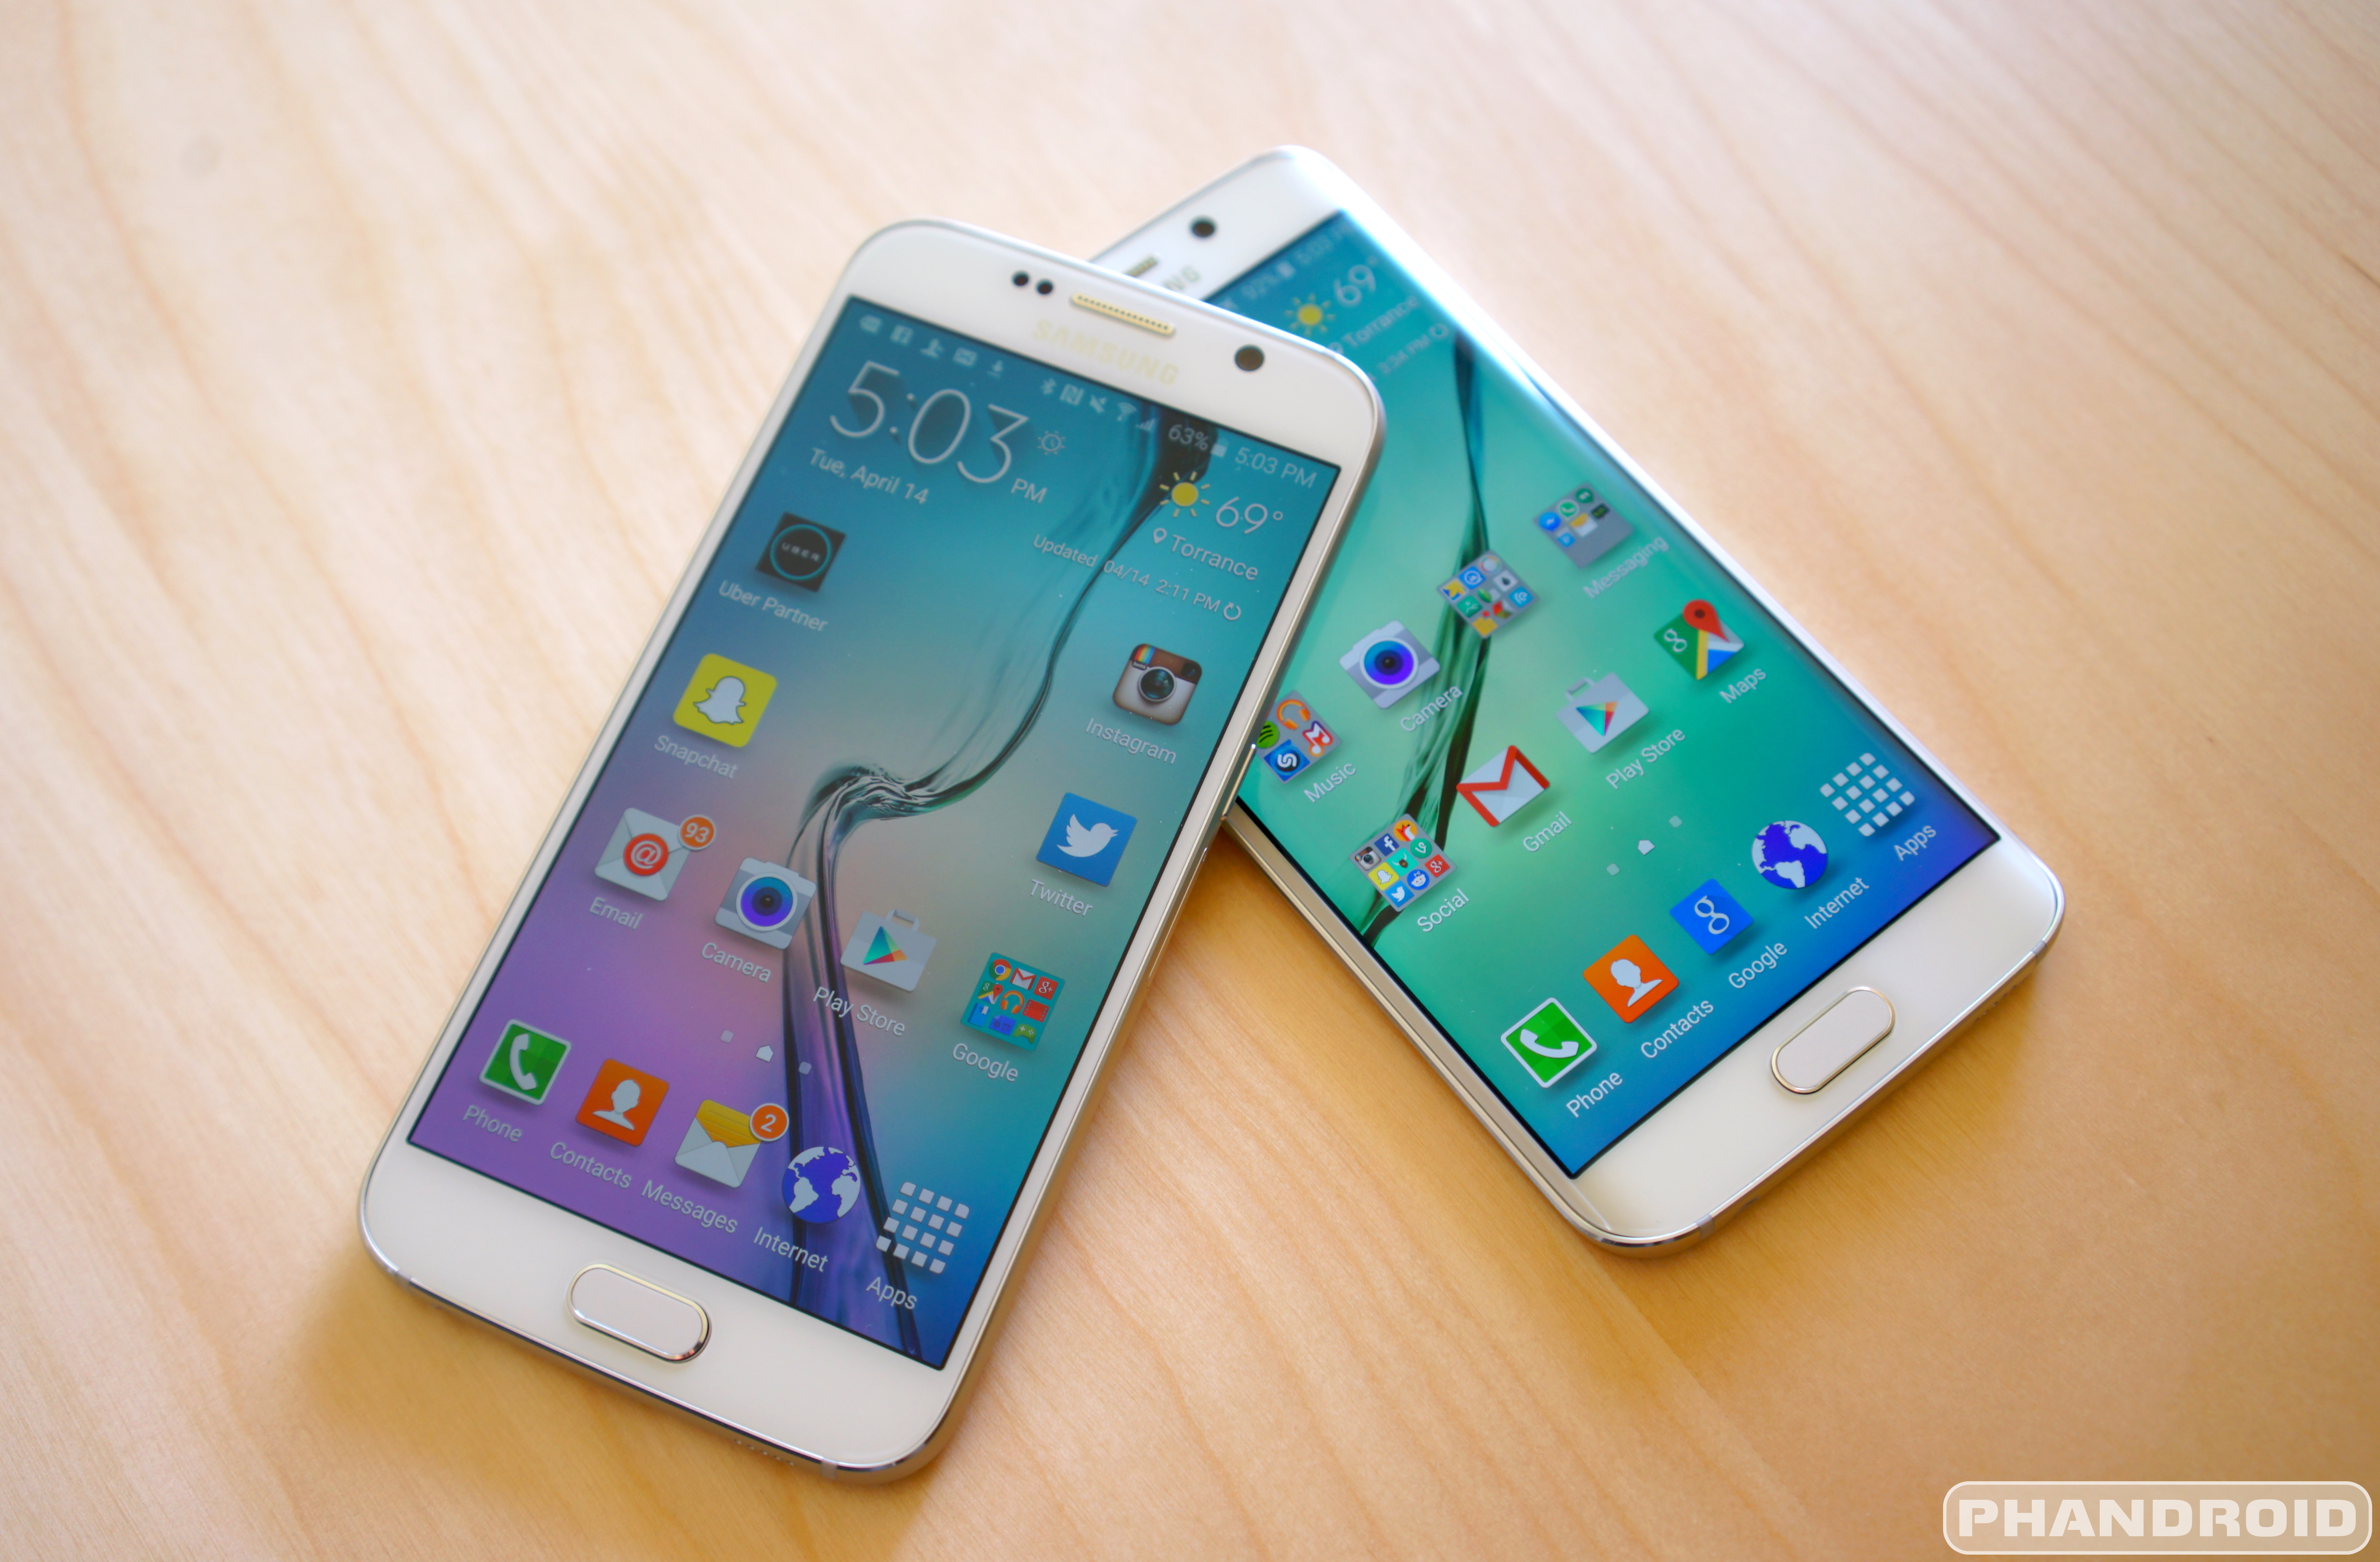 Camera New Samsung Android Phones things to do with your new android phone phandroid samsung galaxy s6 hero